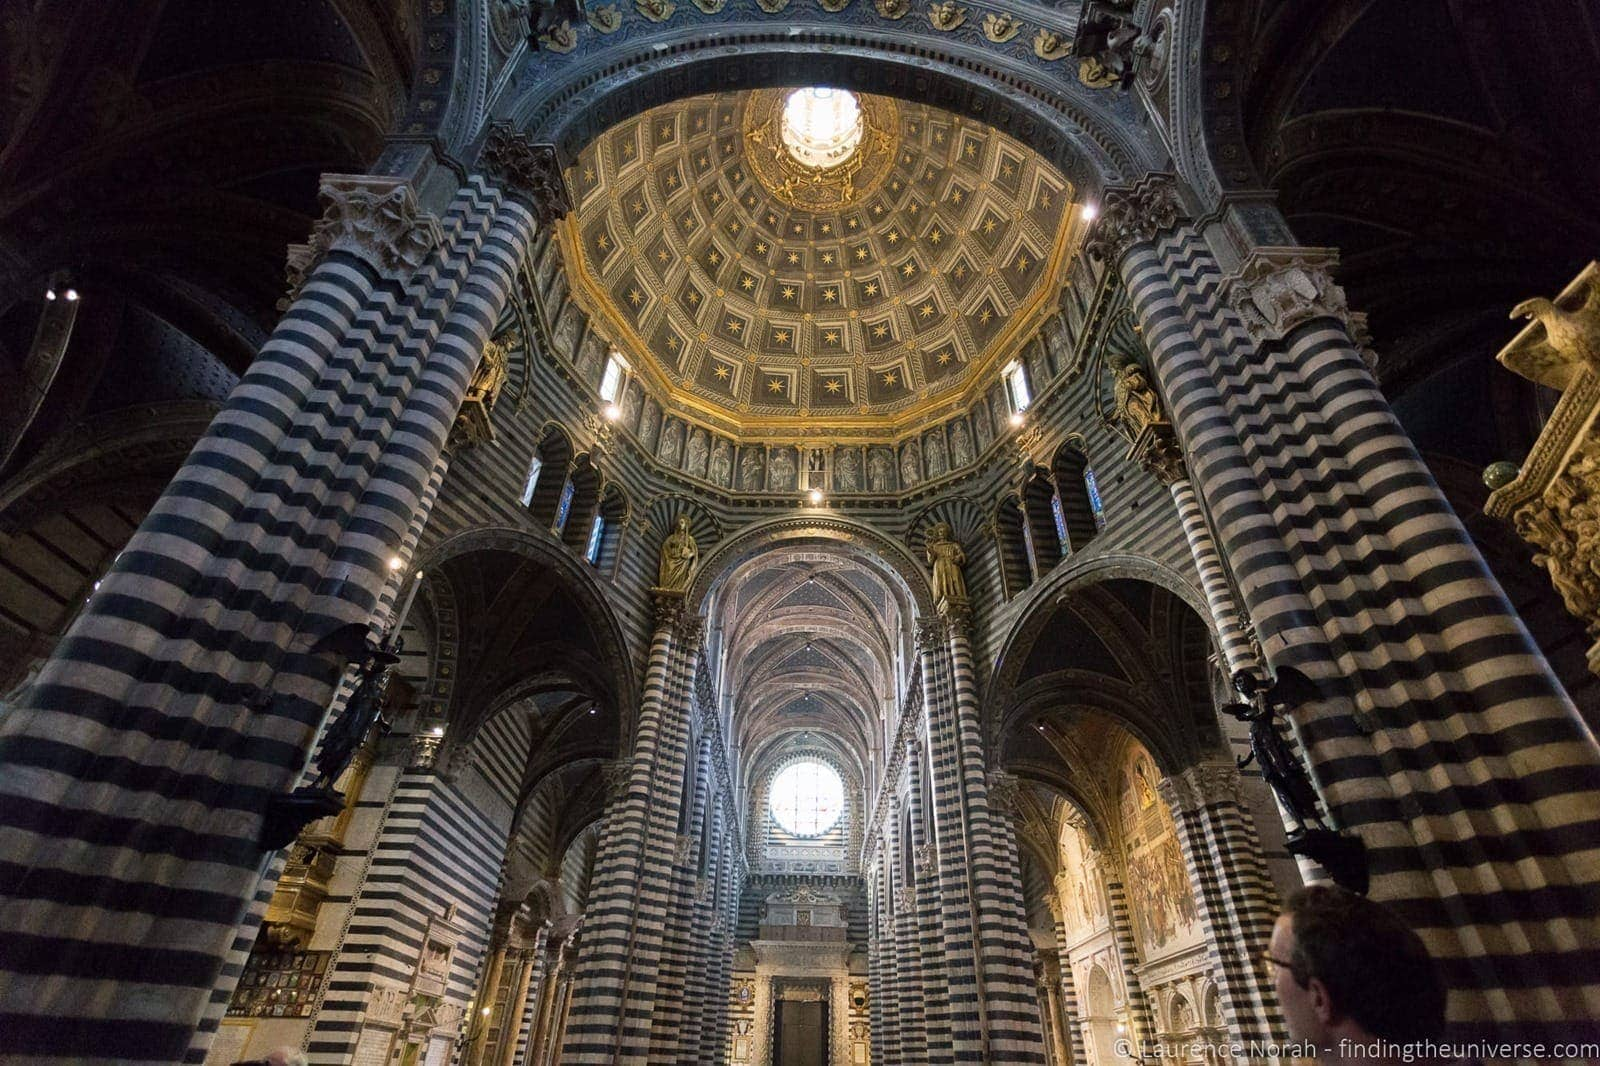 Interior Siena Cathedral